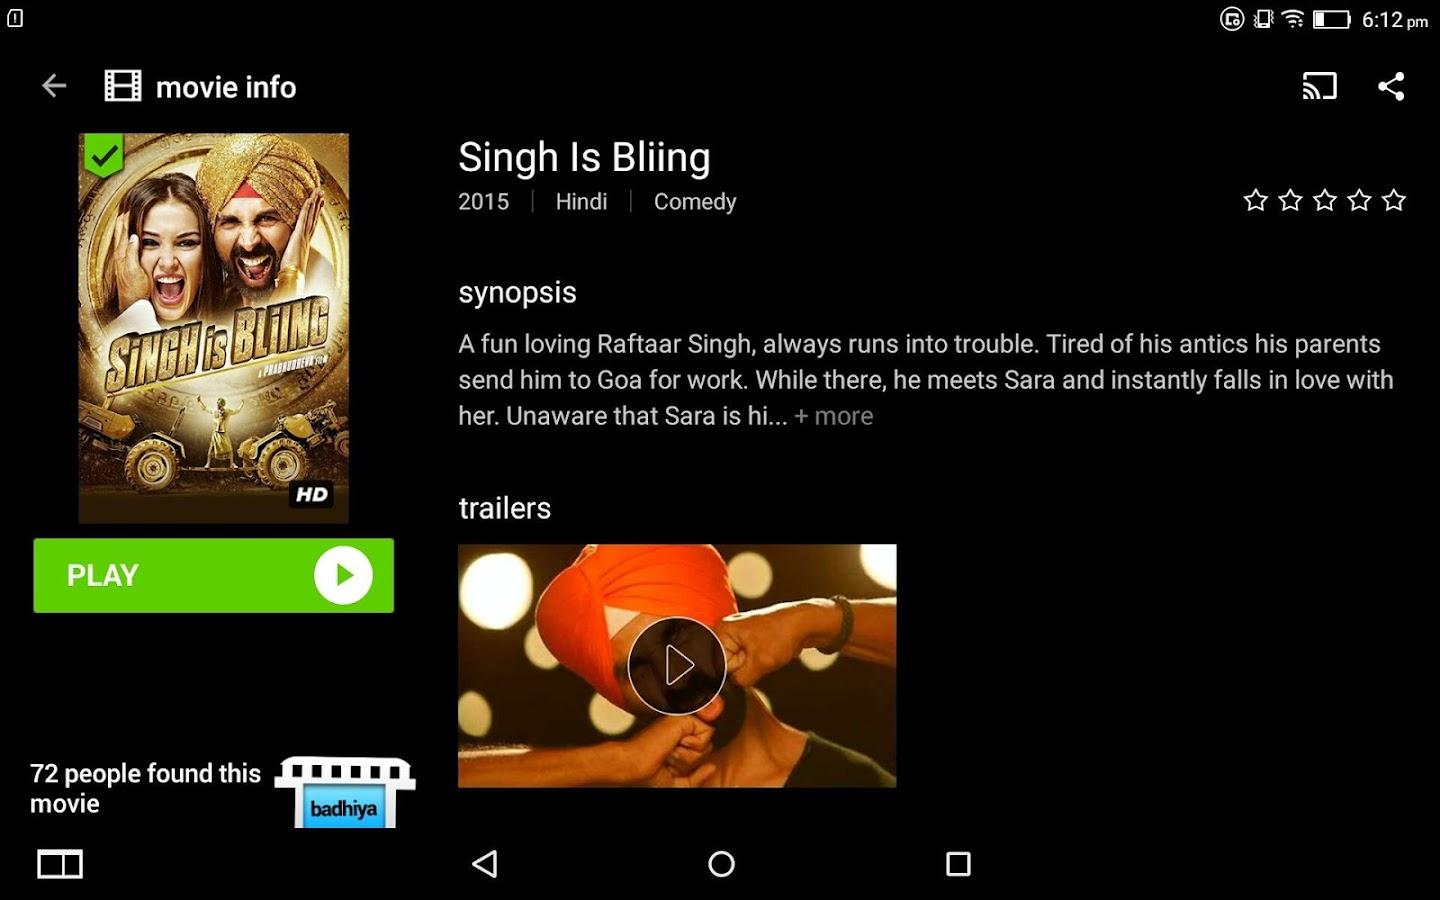 Hungama Play Online Movies App Screenshot 18